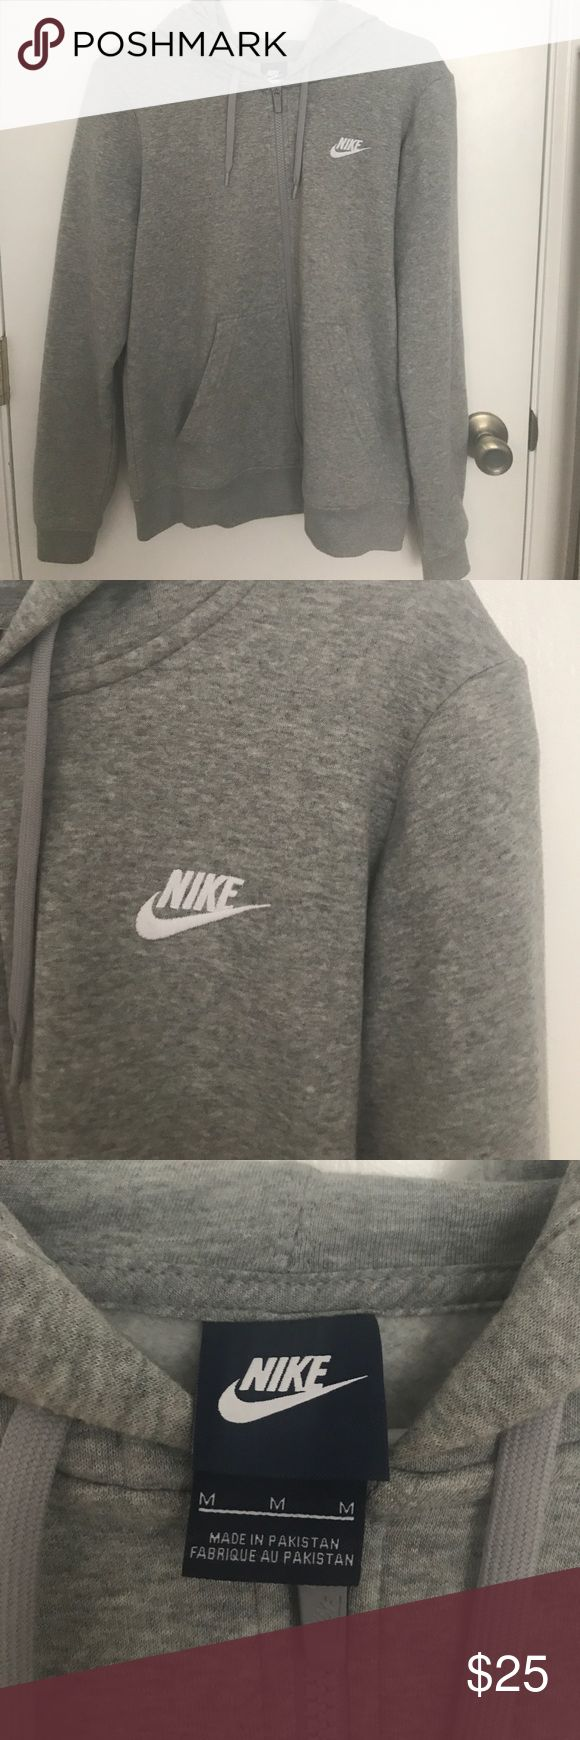 Nike Zip-Up Hoodie Grey Nike zip-up, size medium. Only tried on! Really cute, super comfy and soft. Not my style anymore though! Nike Tops Sweatshirts & Hoodies